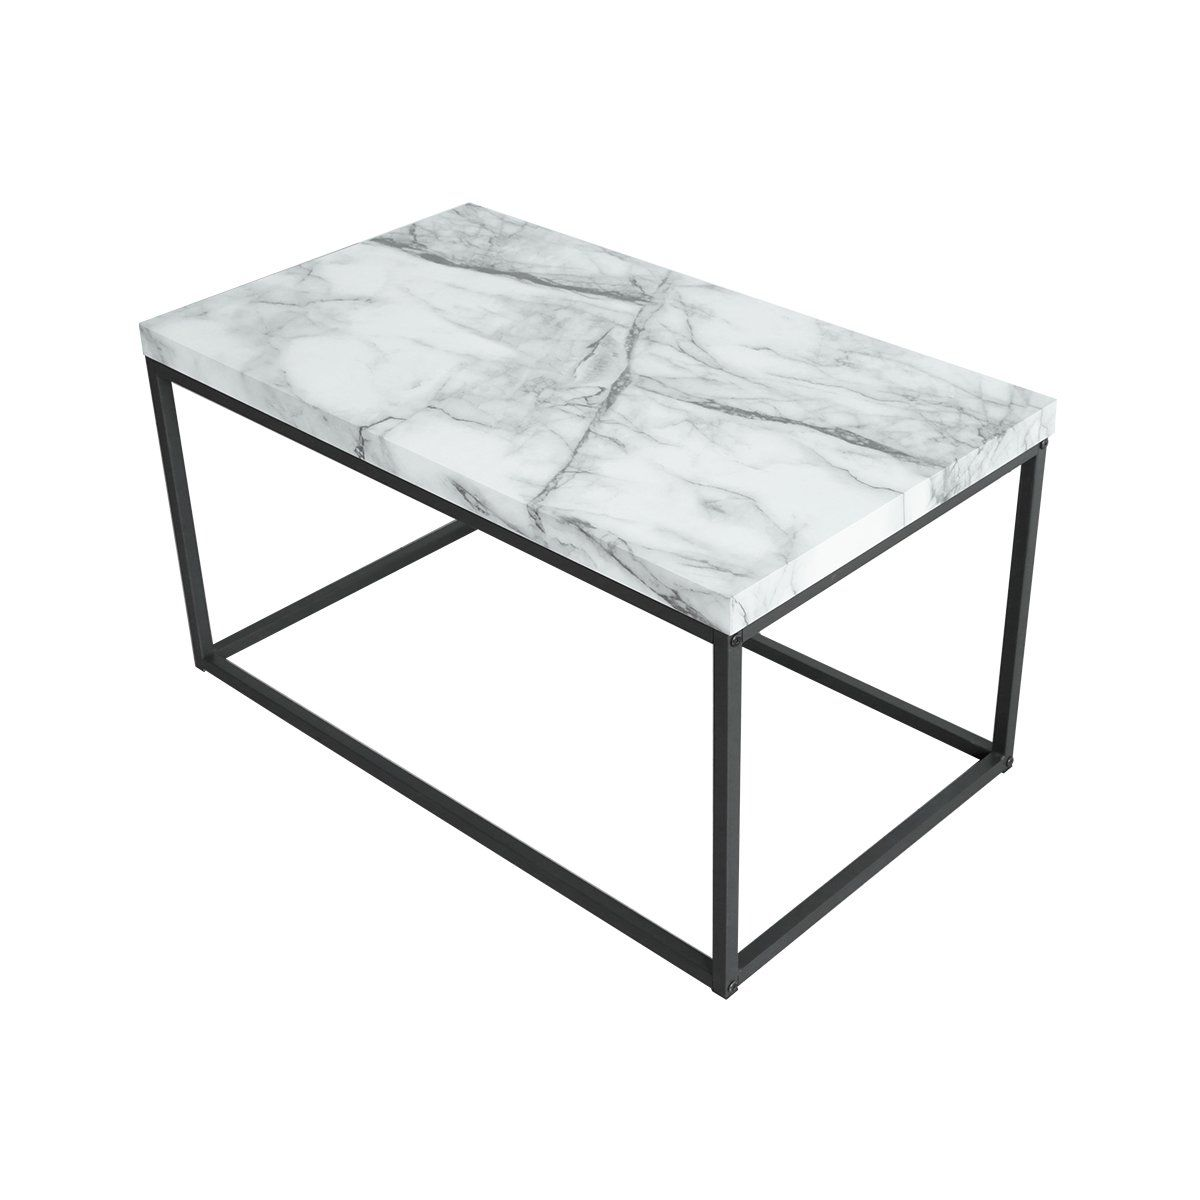 roomfitters faux marble top coffee table living room essentials accent rectangle cocktail tablewhite west elm box frame pier one small tables pottery barn chairs rattan dining